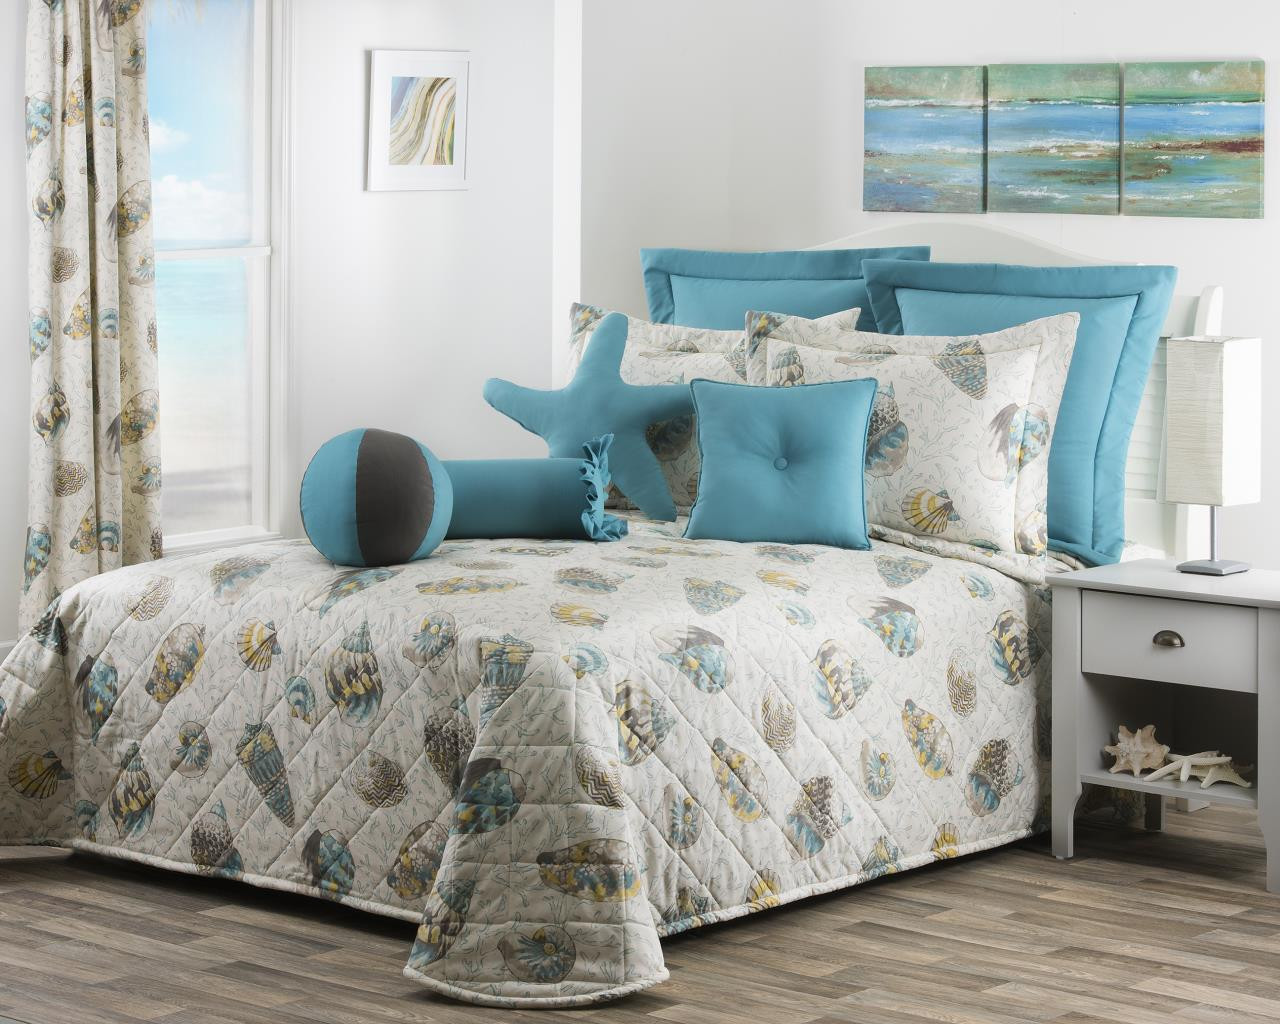 Seaside Treasures Caribbean Bedding Collection -